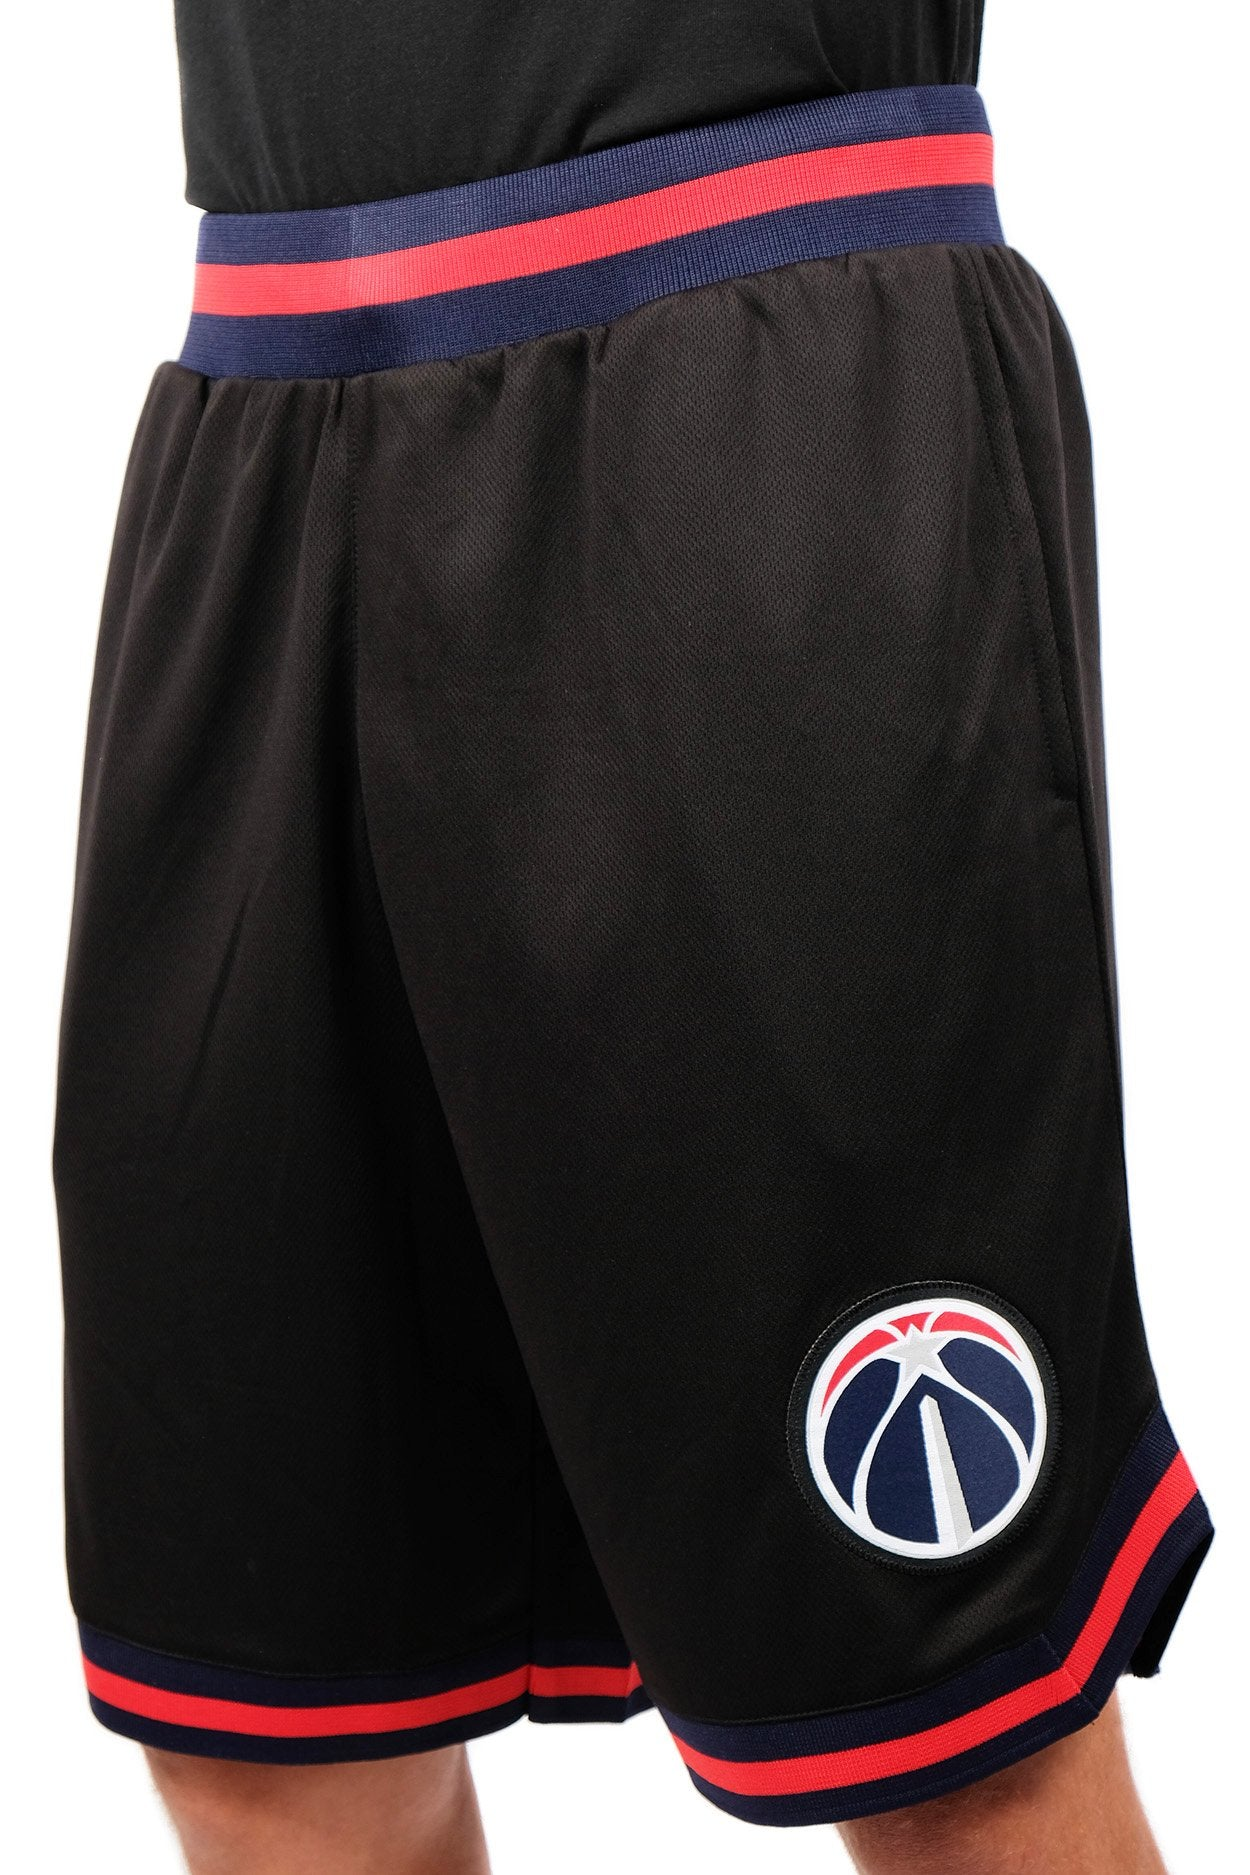 NBA Washington Wizards Men's Basketball Shorts|Washington Wizards